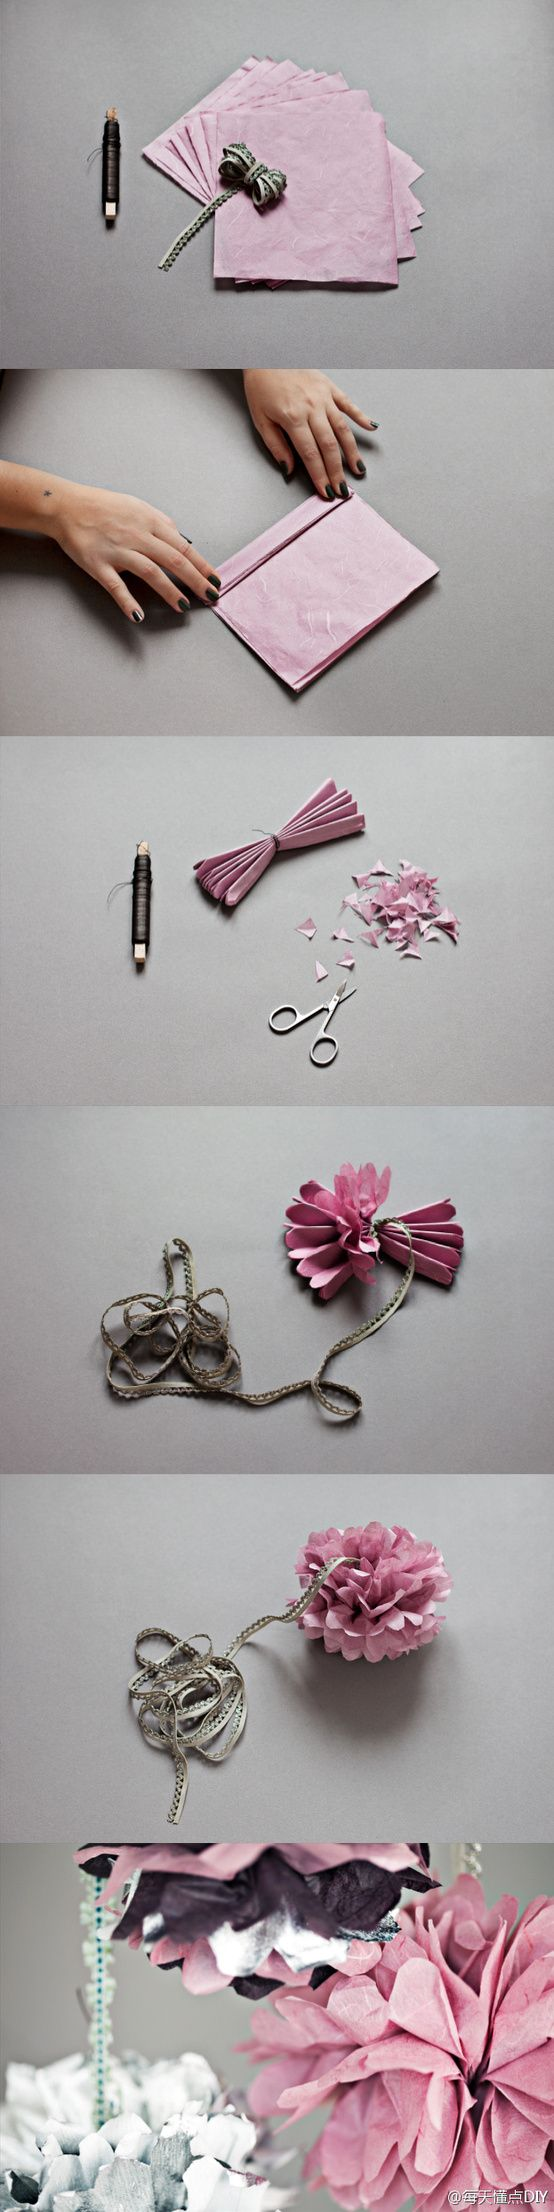 Do It Yourself Crafts For Teenagers Step By Step